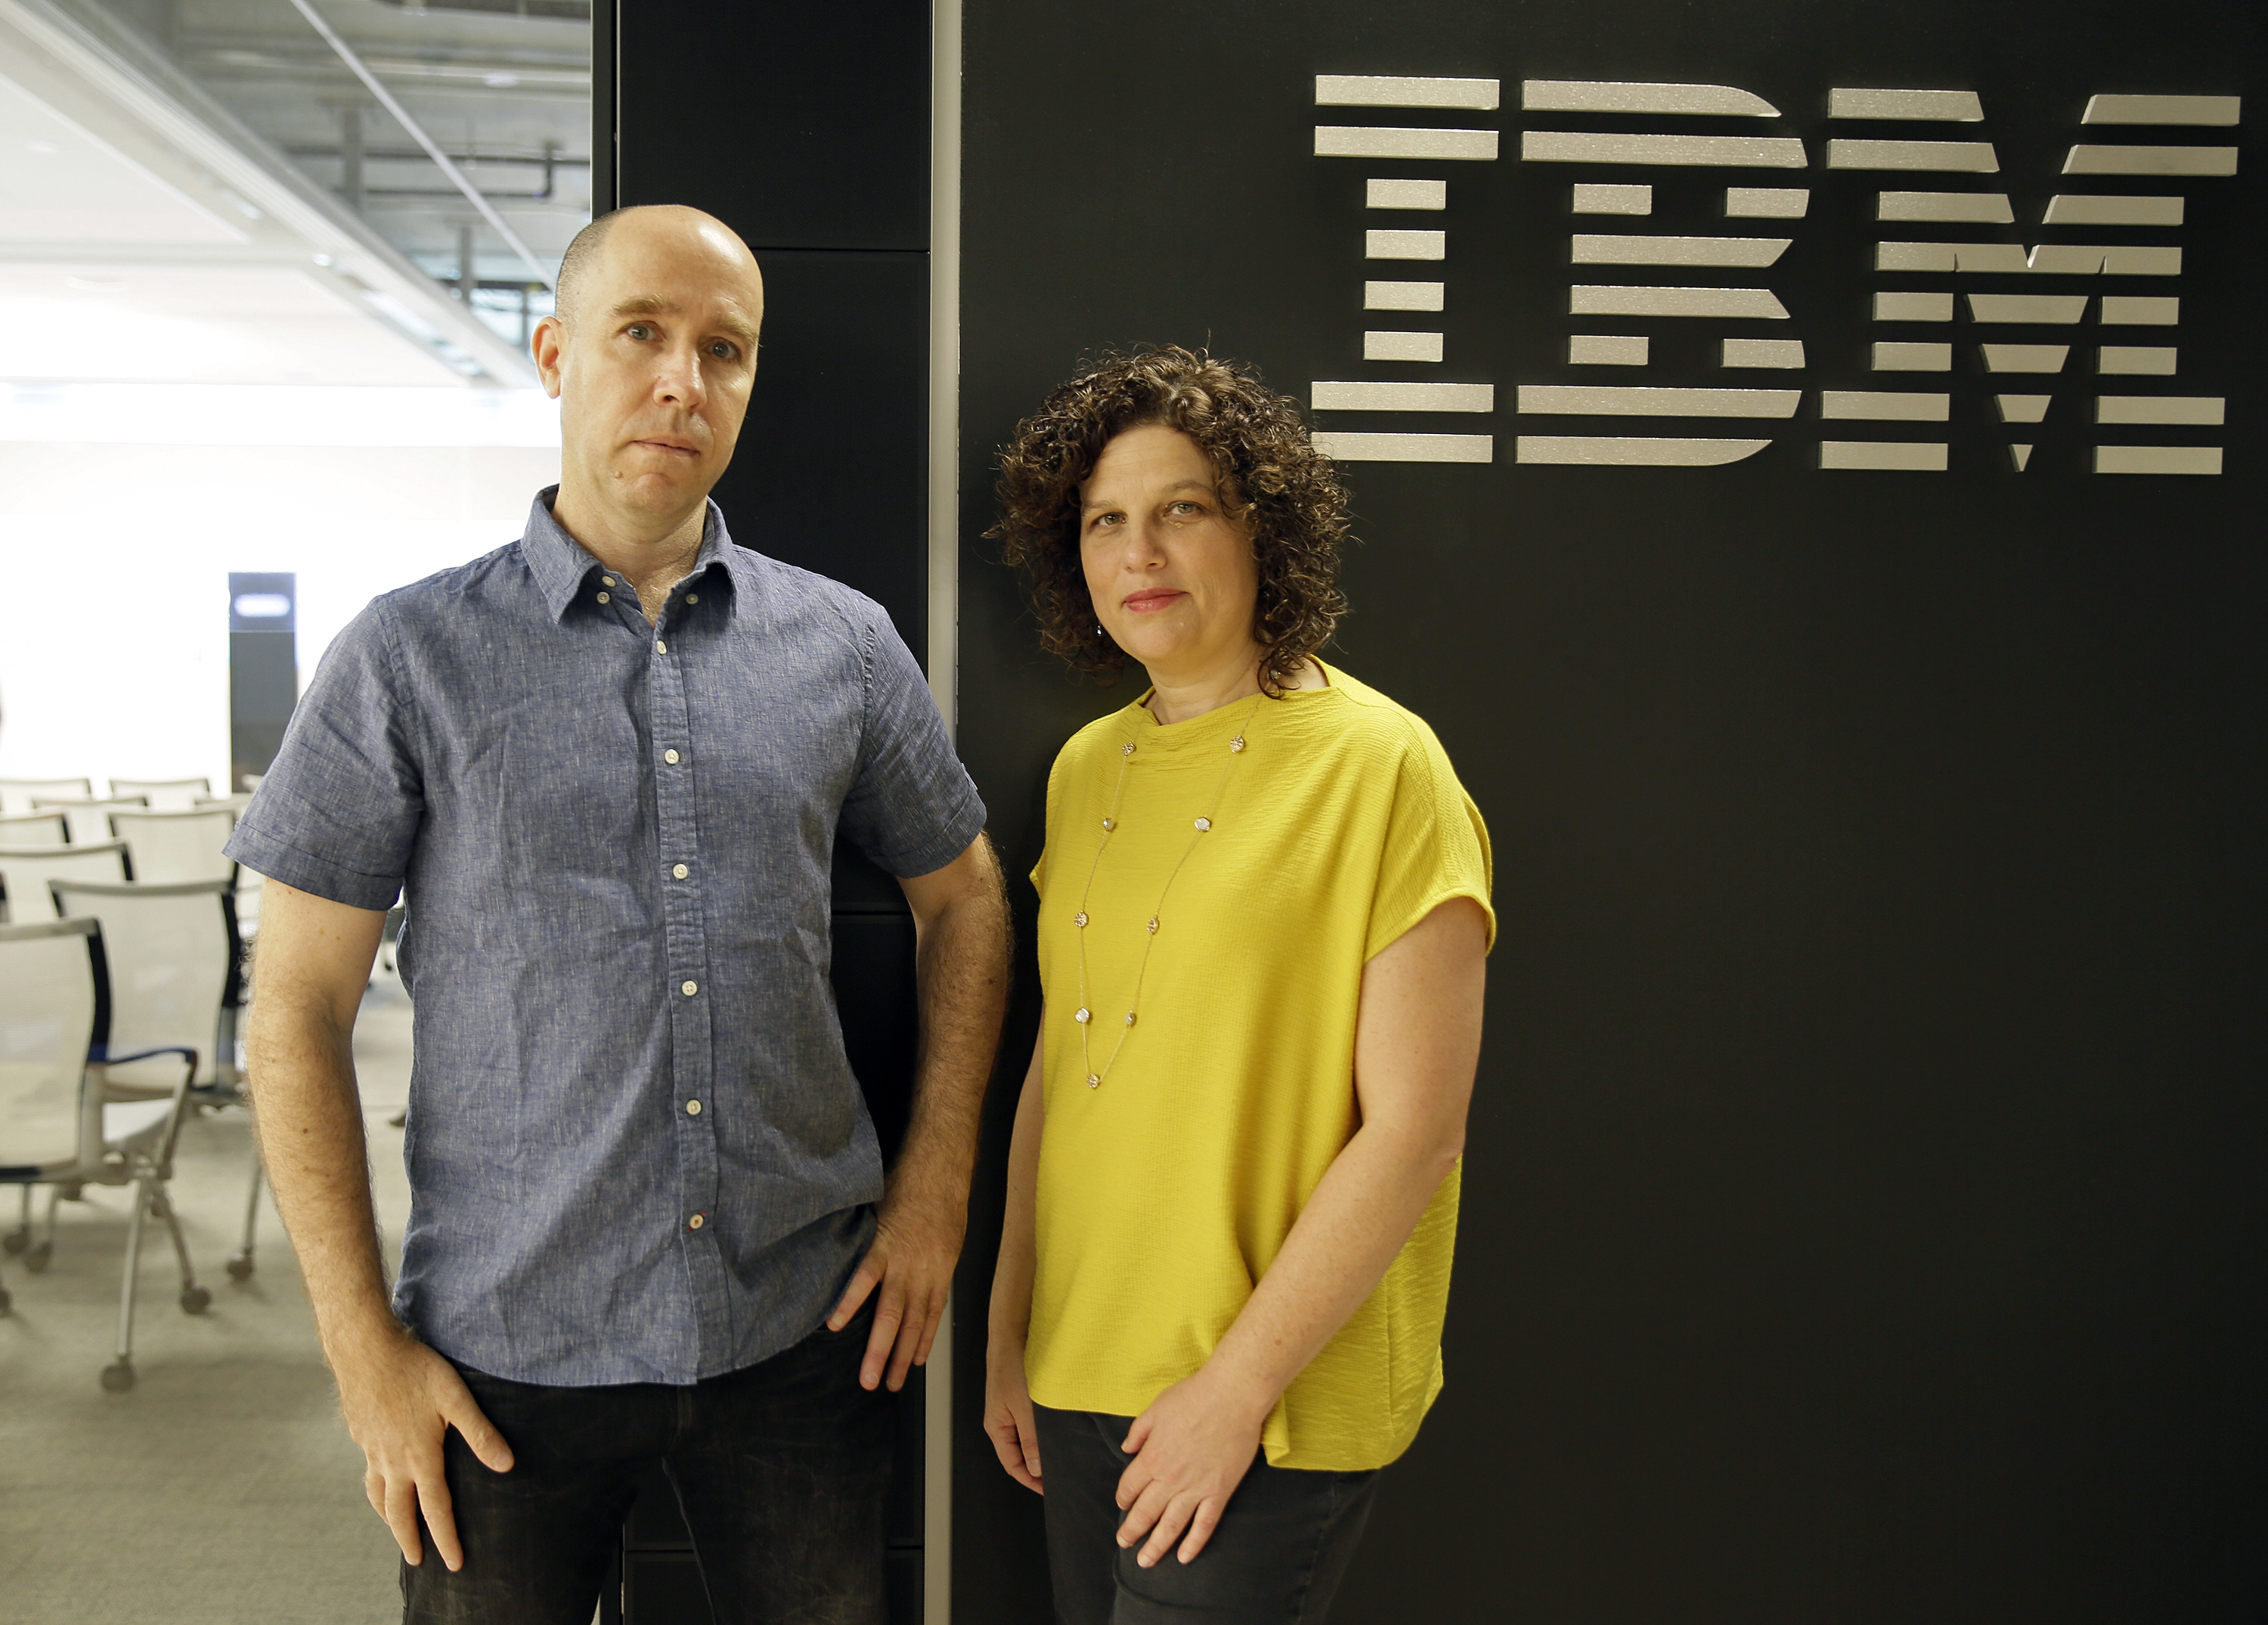 Dr. Noam Slonim, left, principal investigator, and Dr. Ranit Aharonov, right, manager, pose near the IBM Project Debater before a debate between the computer and two human debaters in San Francisco, June 18, 2018.